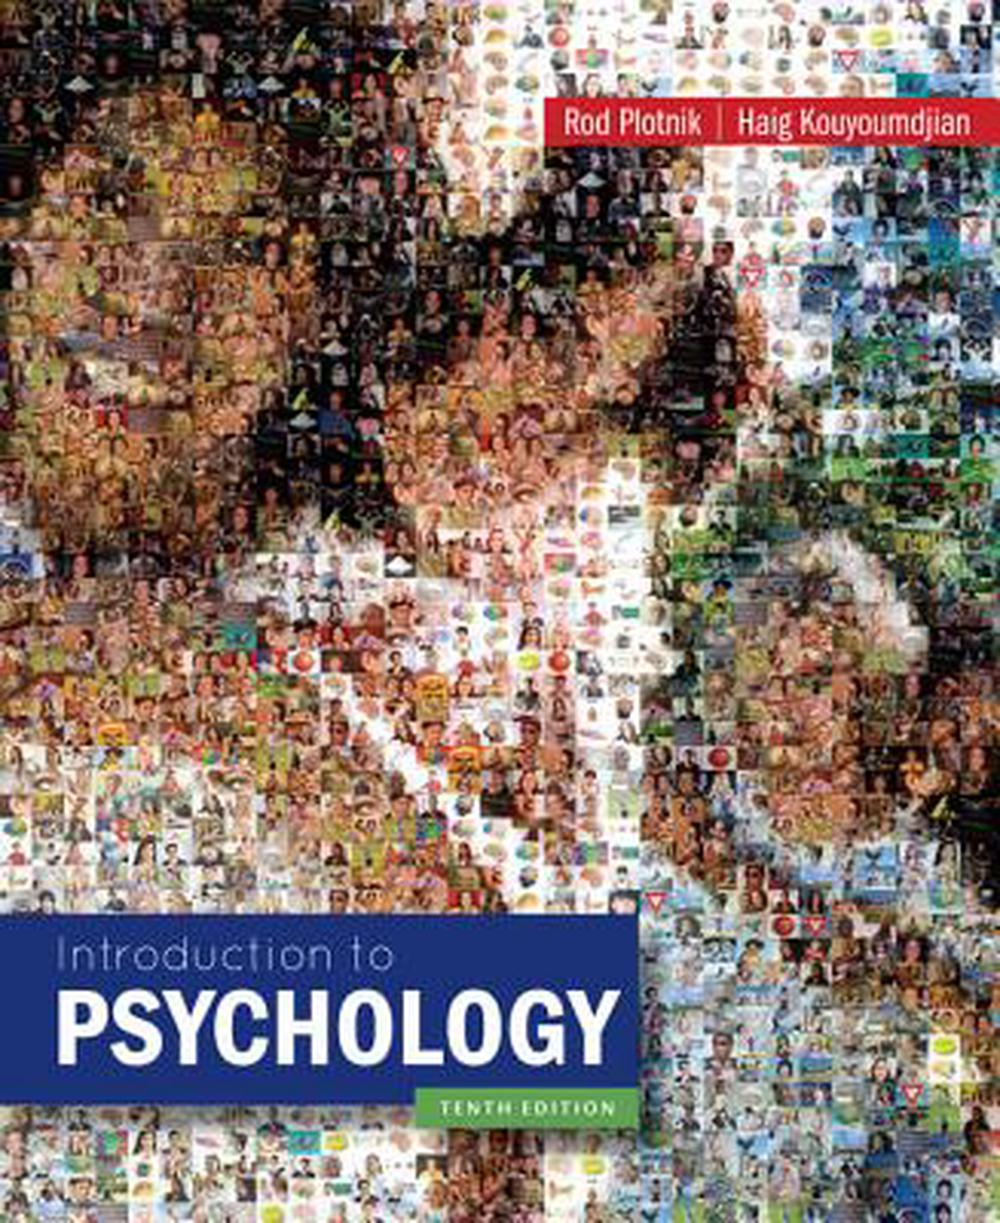 Introduction to Psychology by Rod Plotnik, ISBN: 9781133939535